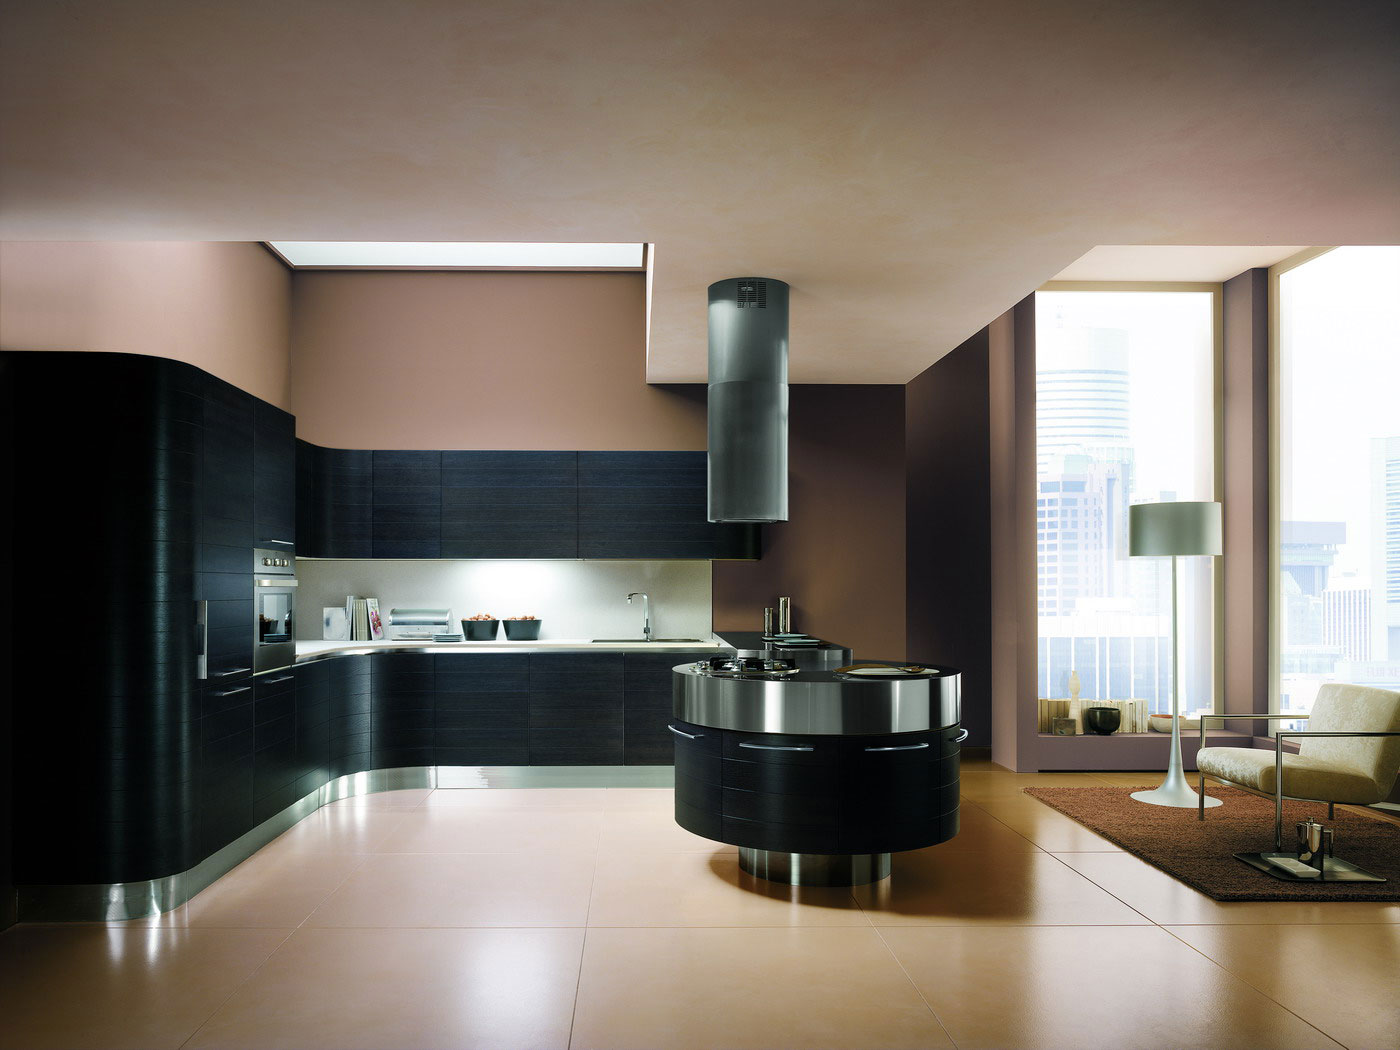 installation de cuisine cuisiniste voiron grenoble. Black Bedroom Furniture Sets. Home Design Ideas